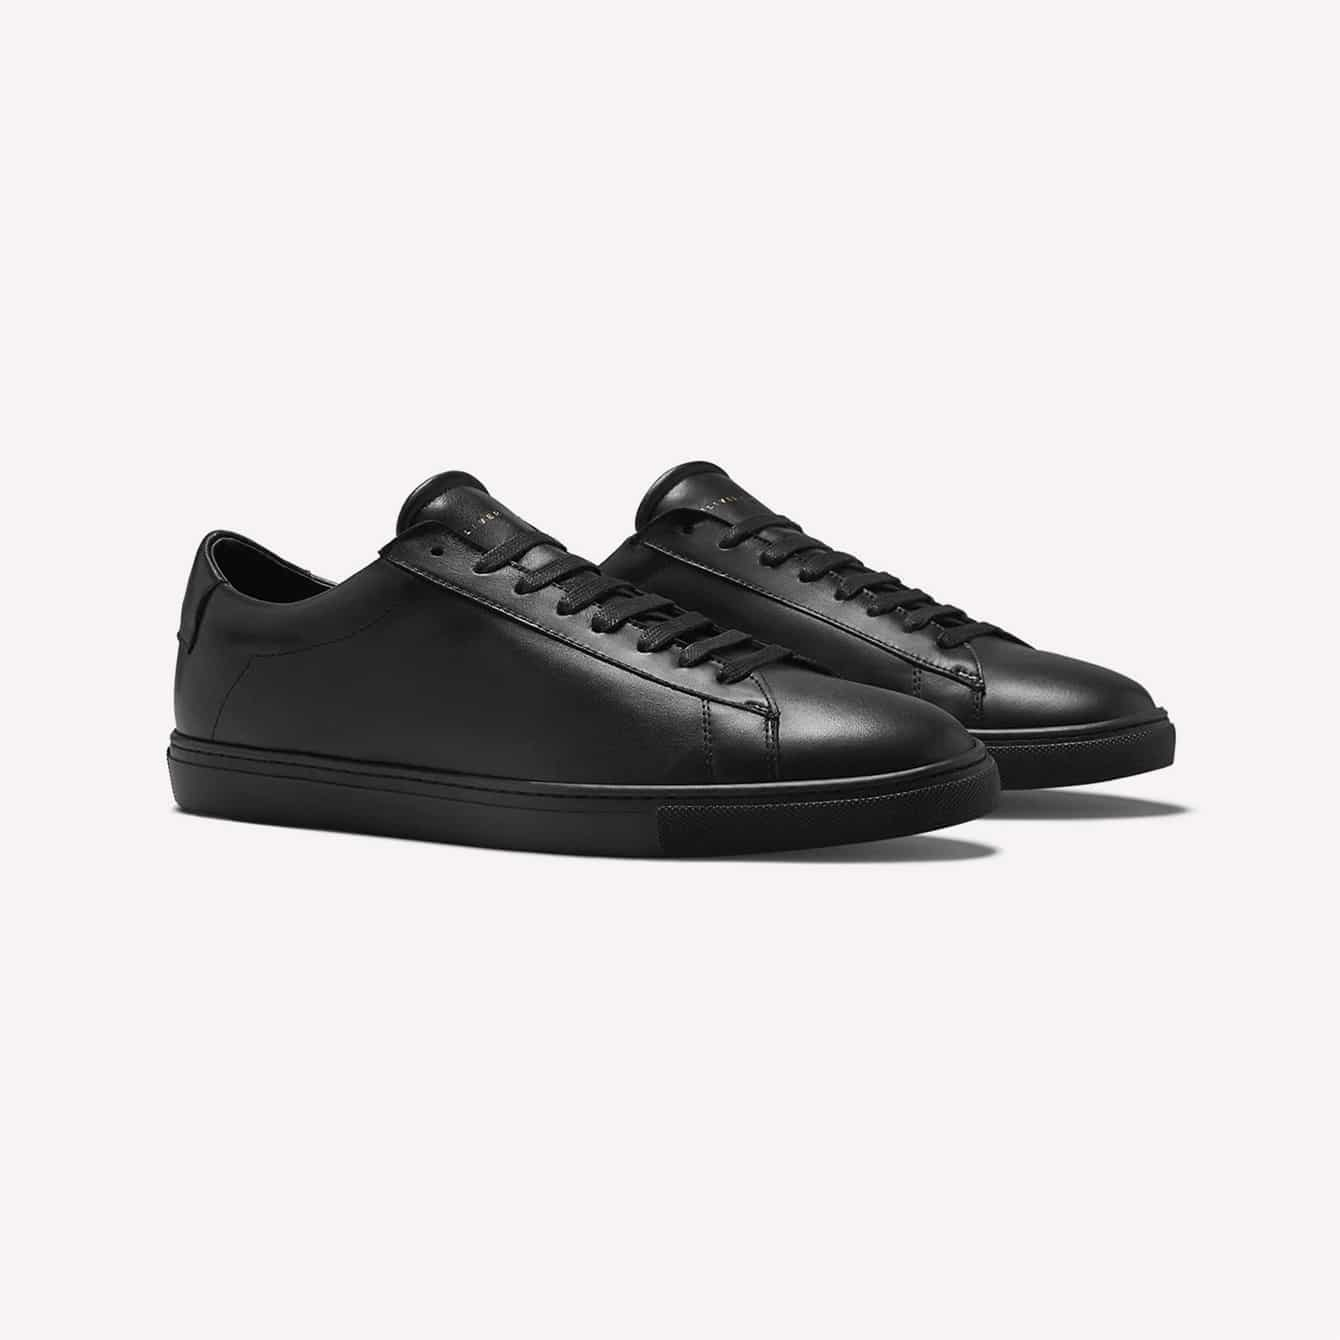 Oliver Cabell Low 1 Black Sneakers